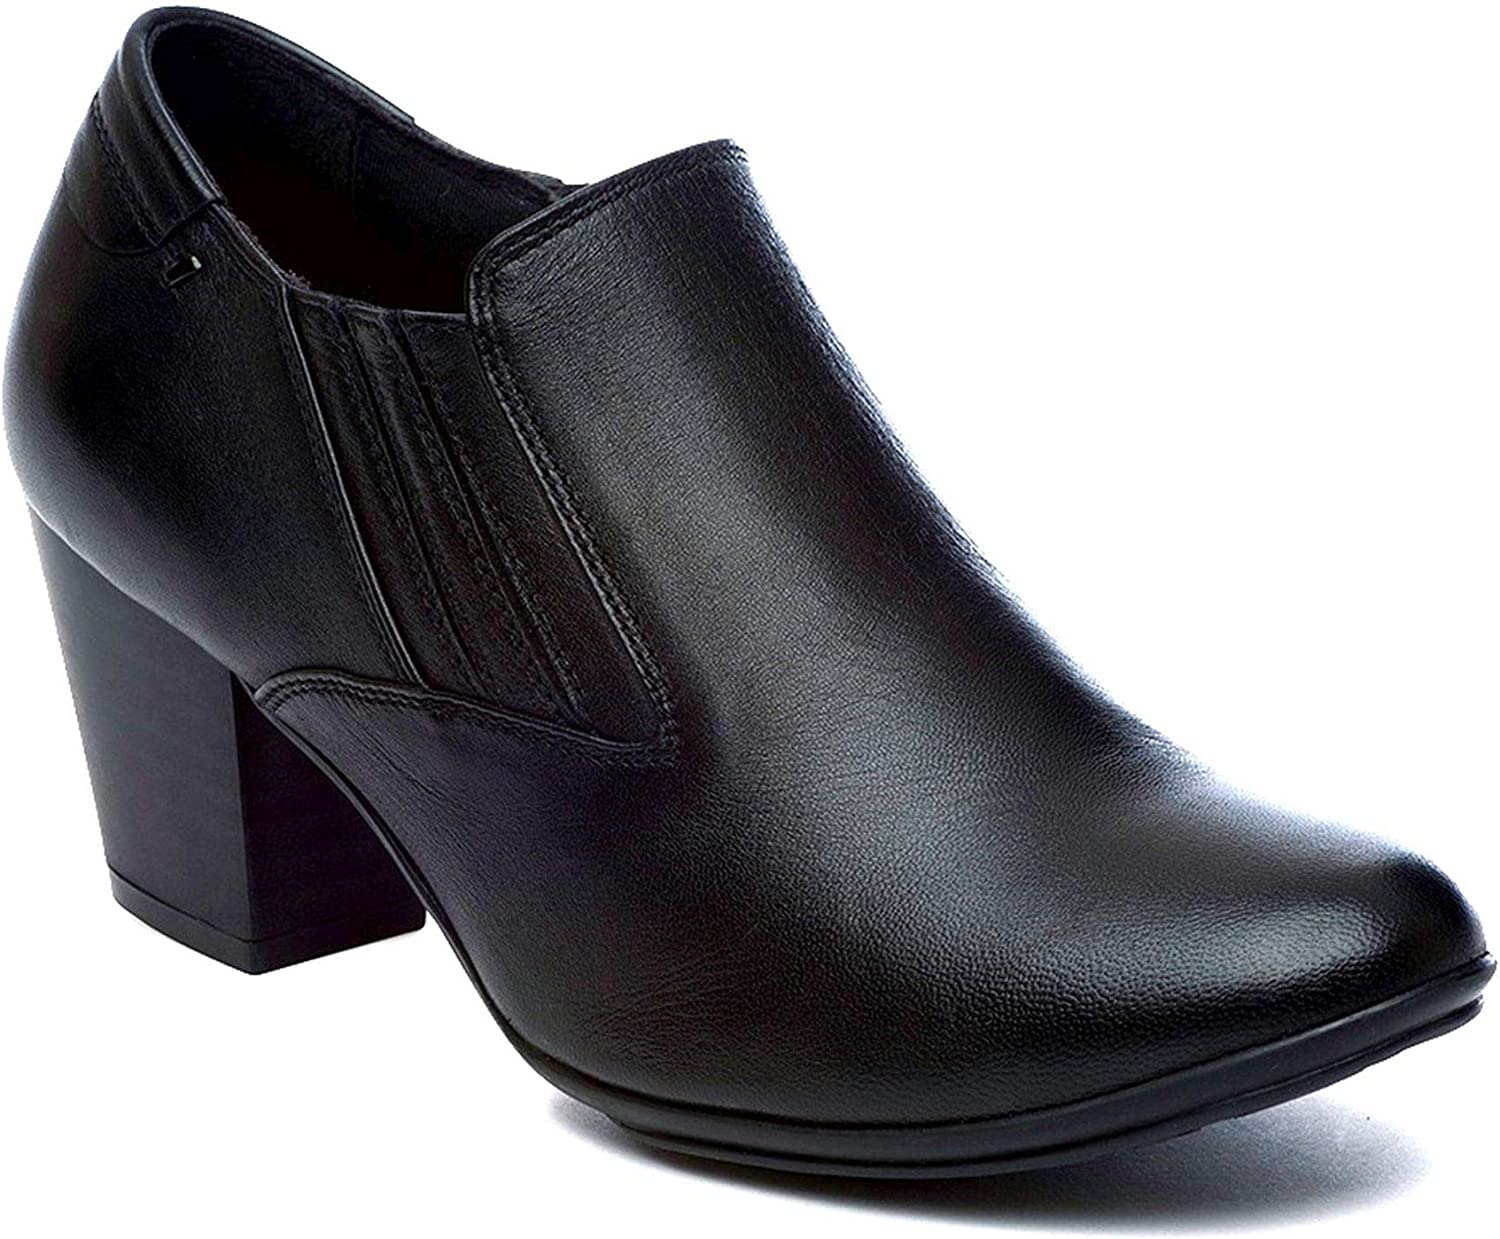 Ladies Womens Ankle Boots Trouser